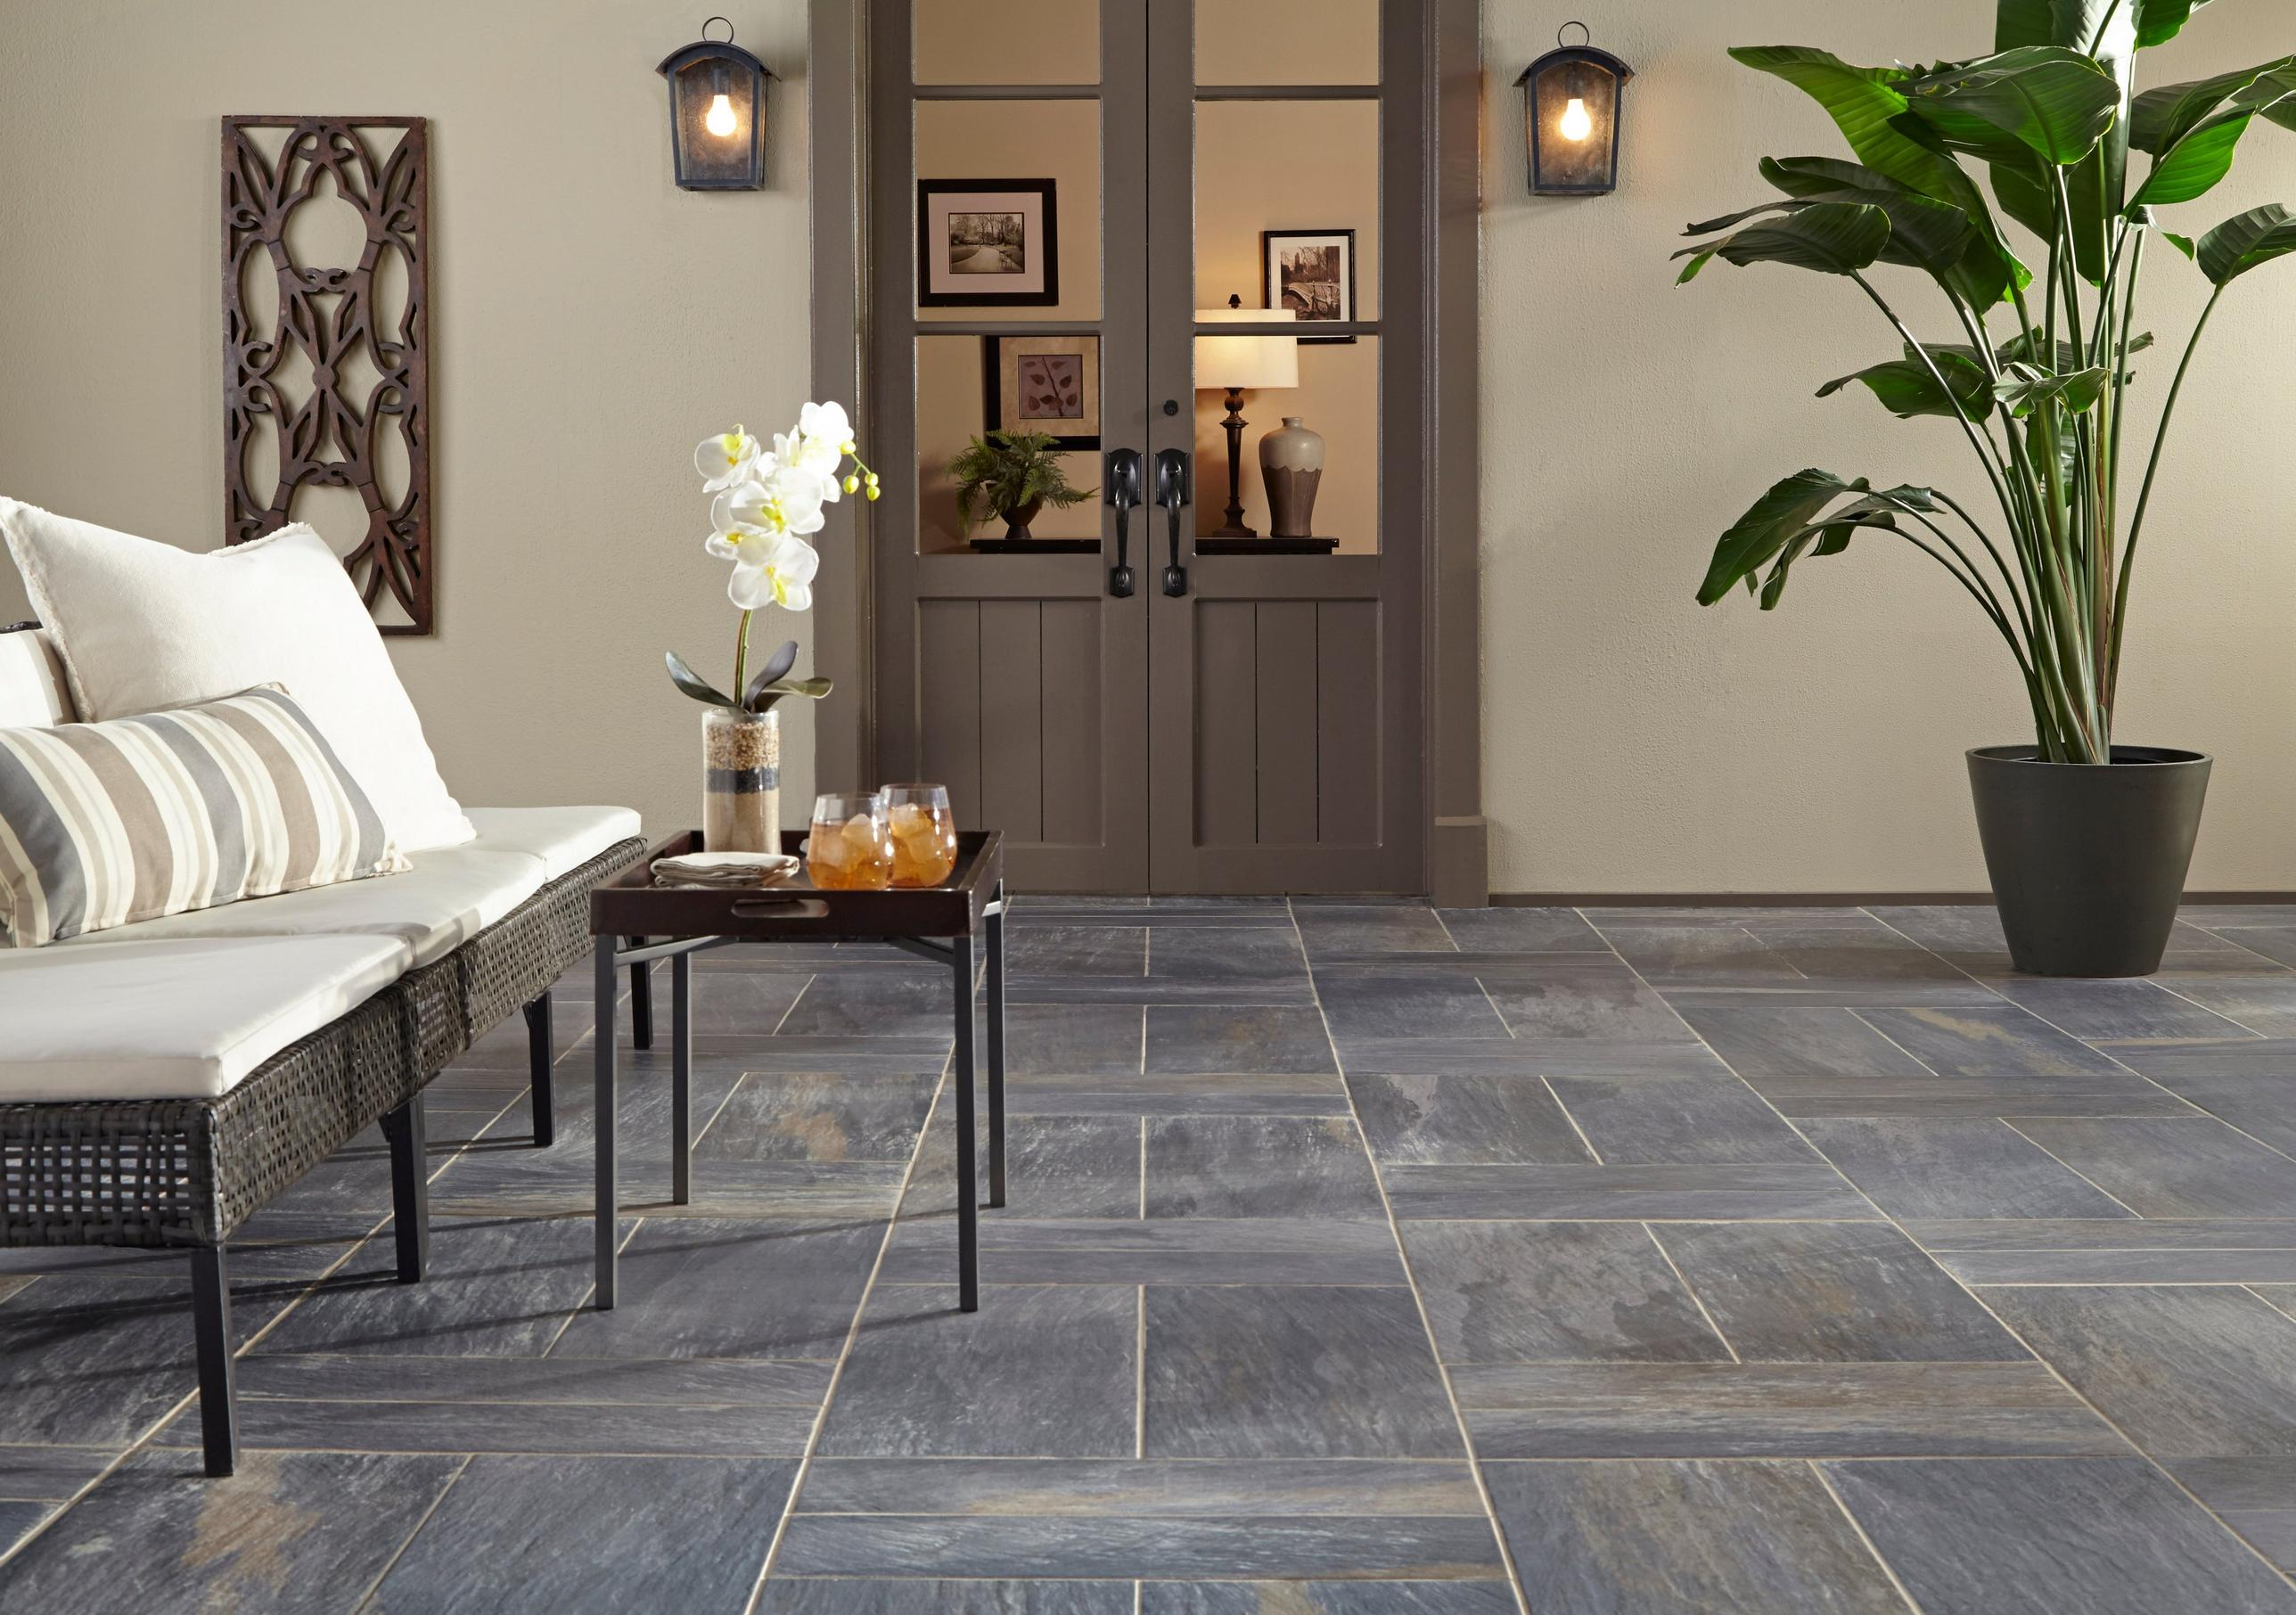 Outdoor gallery floor decor porcelain tile outdoor patio room view details dailygadgetfo Images